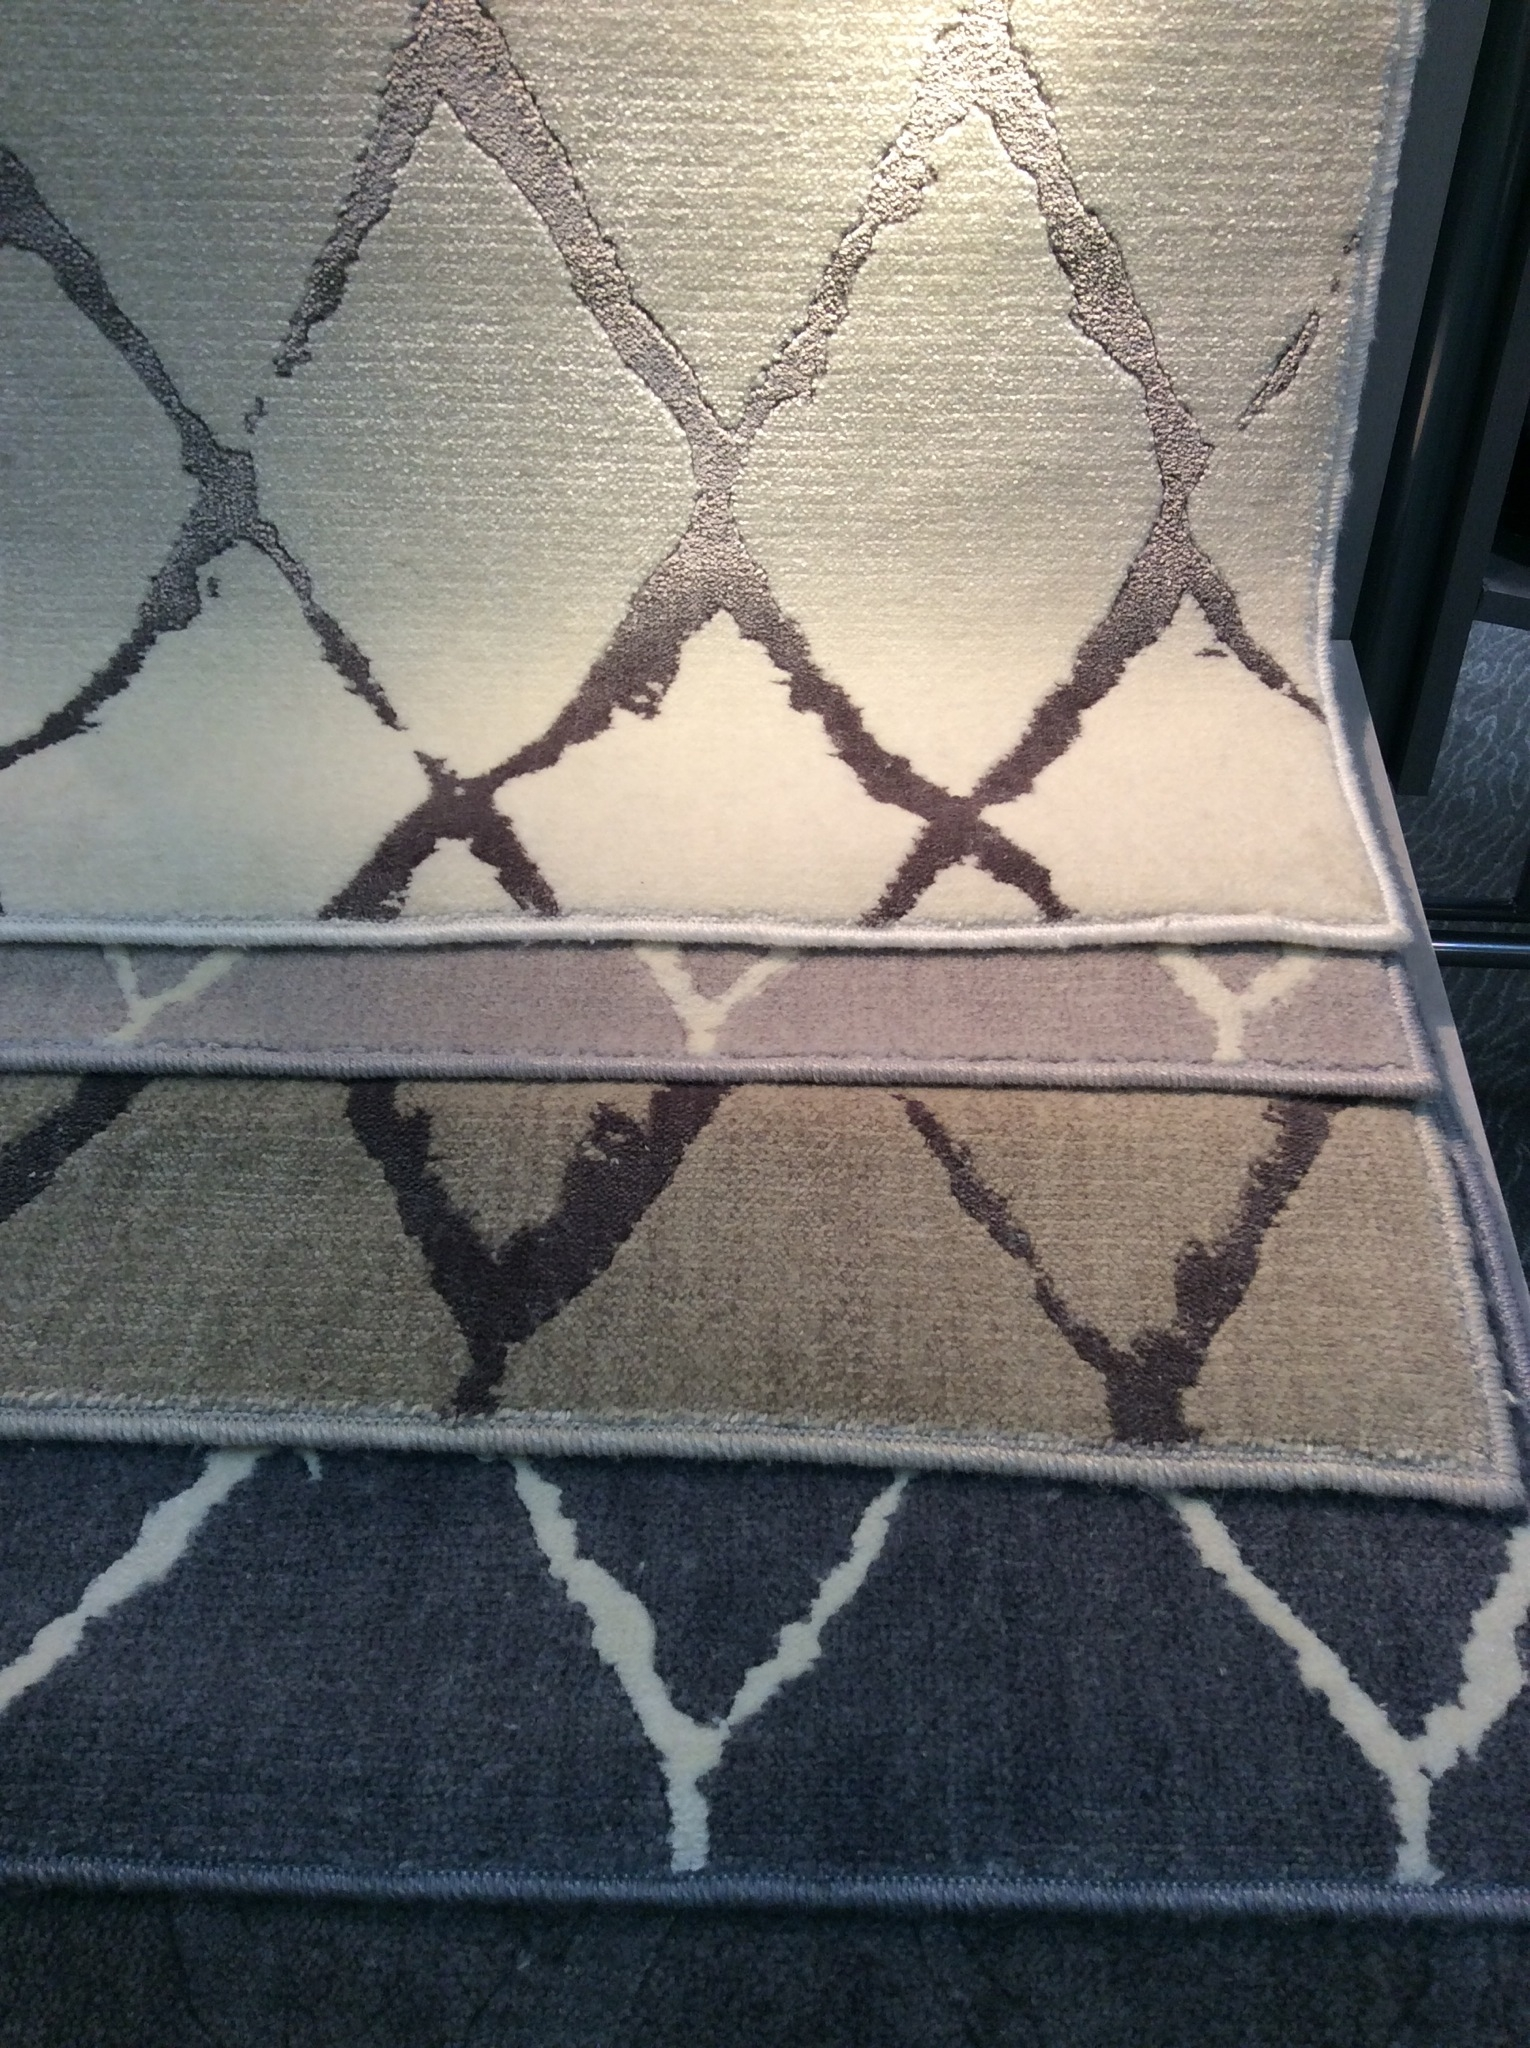 Nourison Broadloom At Surfaces Rug News Anddesign Magazine Regarding Nourison Carpets (Image 11 of 15)